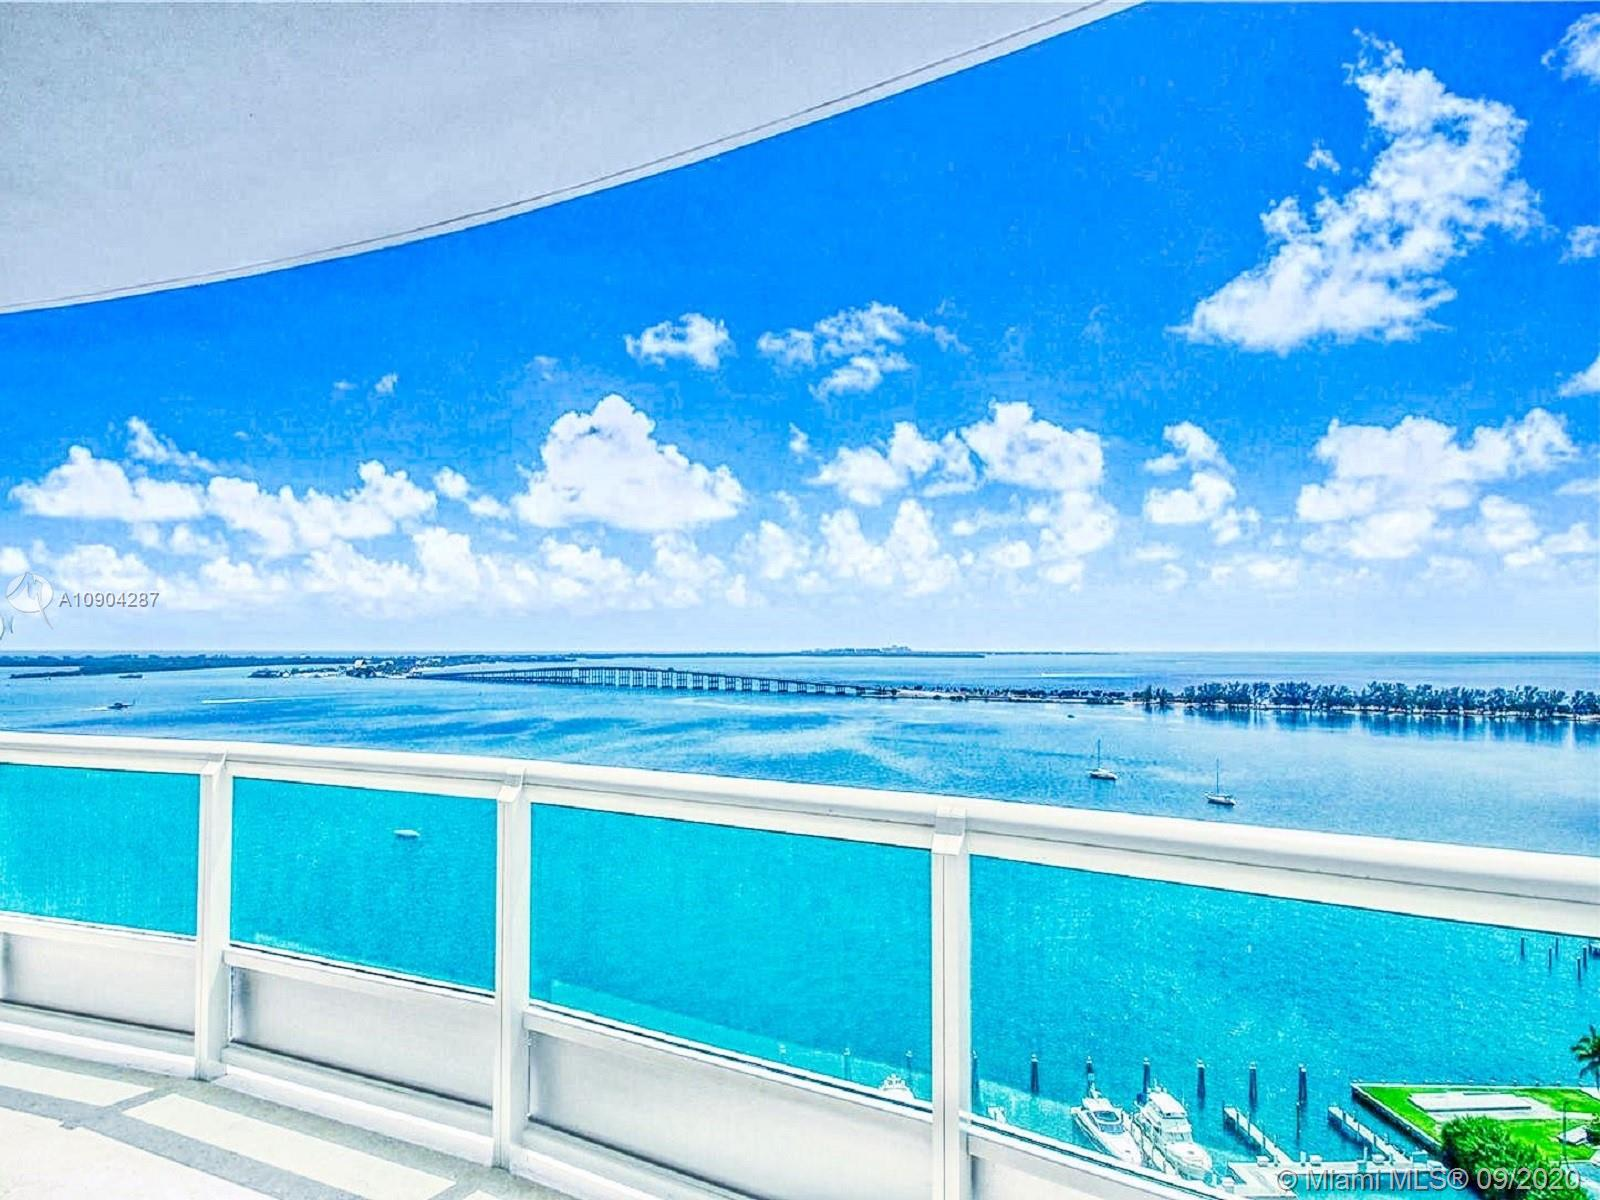 Santa Maria is one of Miami's luxurious residences and it offers its residents a luxury lifestyle developed by Ugo Colombo. Amazing all around views of the Ocean, bay, mesmerizing Skyline, and wide balconies where you can relax and enjoy the views with fresh and breathable air.  Renovated almost a year ago with Italian modern Venetian walls and custom venetian flooring  throughout the entire unit with mosaic design at the entrance/foyer and dining area. The kitchen is designed with the finest modern luxury Italian brand Snaidero. Condo has two private elevators, one with direct unit access and a private service elevator. This condo is one of the most unique condos in the building with its luxurious Italians designs, unique touches and breath taking views, you will fall in love right away.